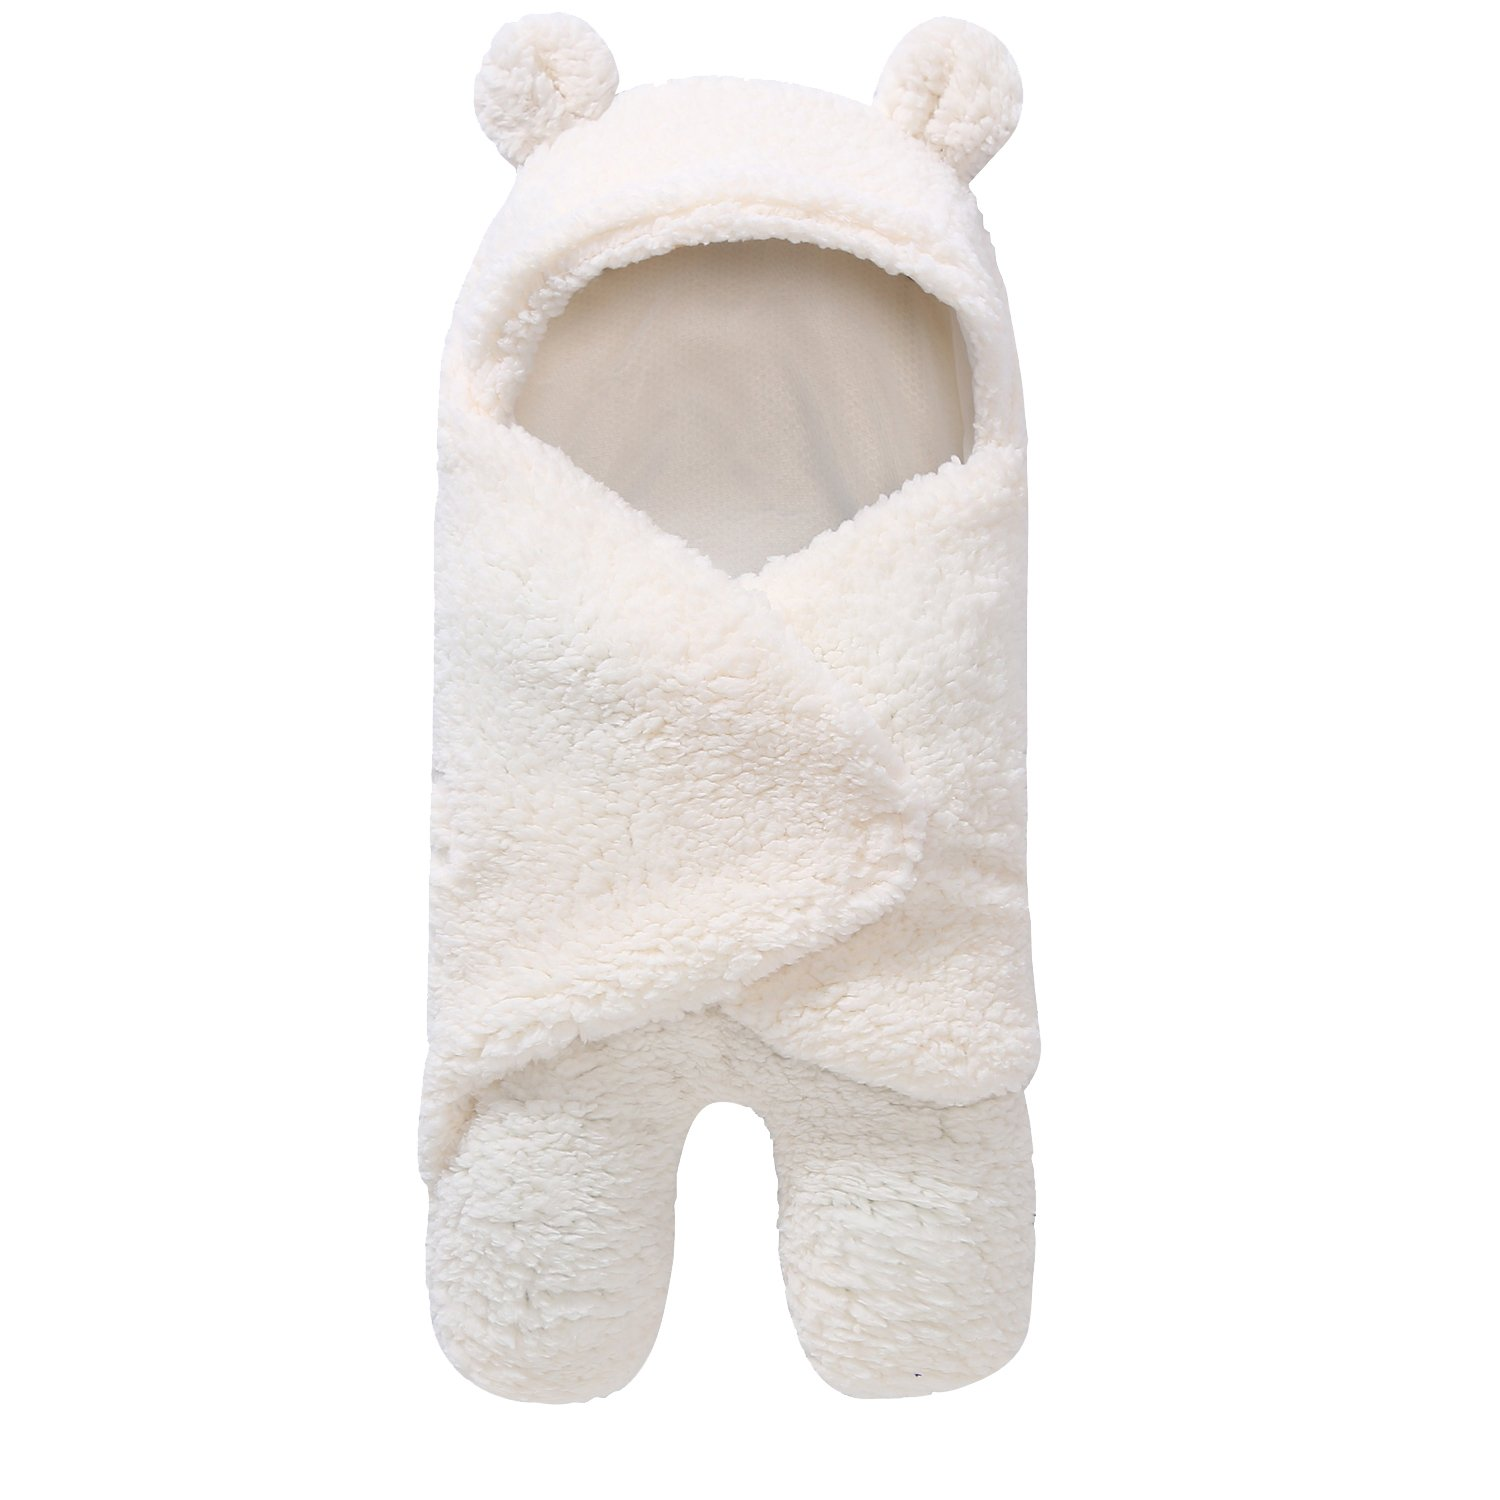 HappyMA Newborn Infant Baby Boys Girls Swaddle Blankets Pure Color Sleeping Bag, Bear Ear Receiving Blankets Outfits (White, 0-6 Months)